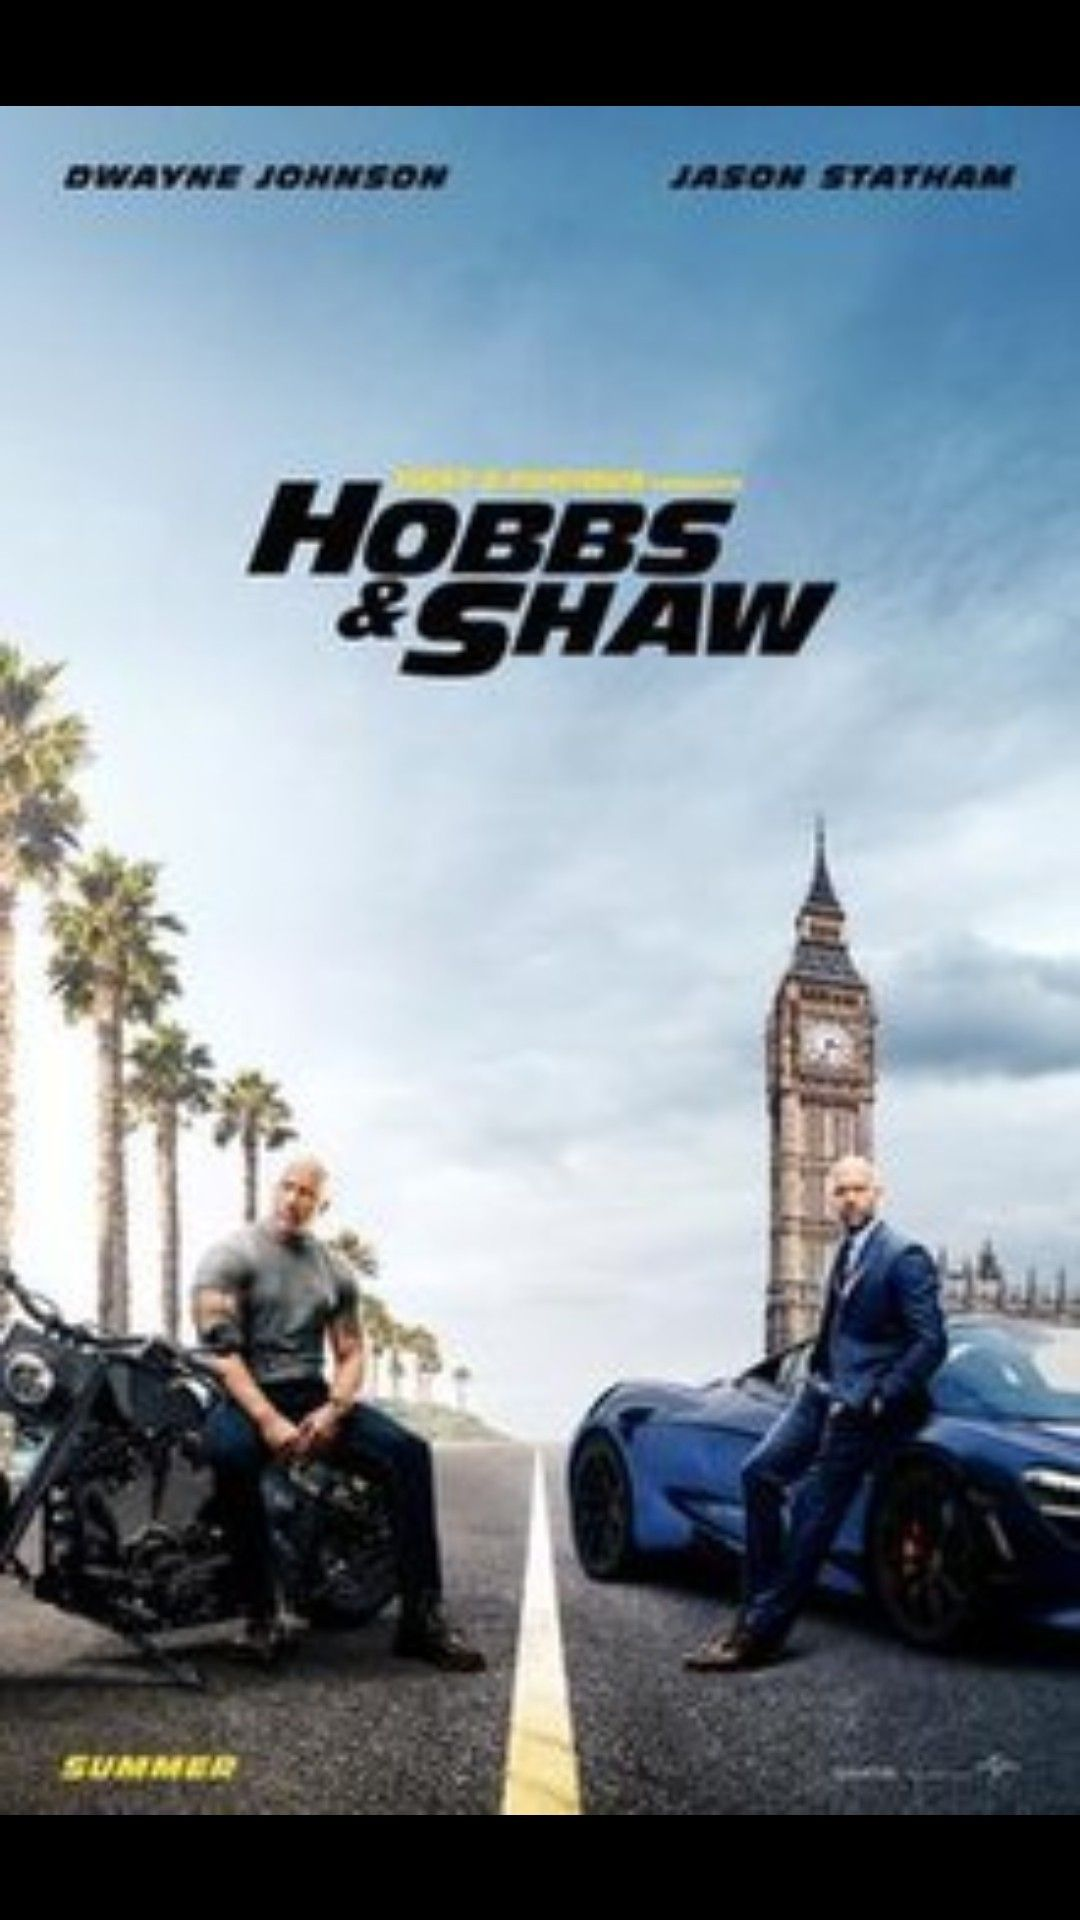 Park Art|My WordPress Blog_Fast And Furious 9 Full Movie Watch Online Free No Sign Up